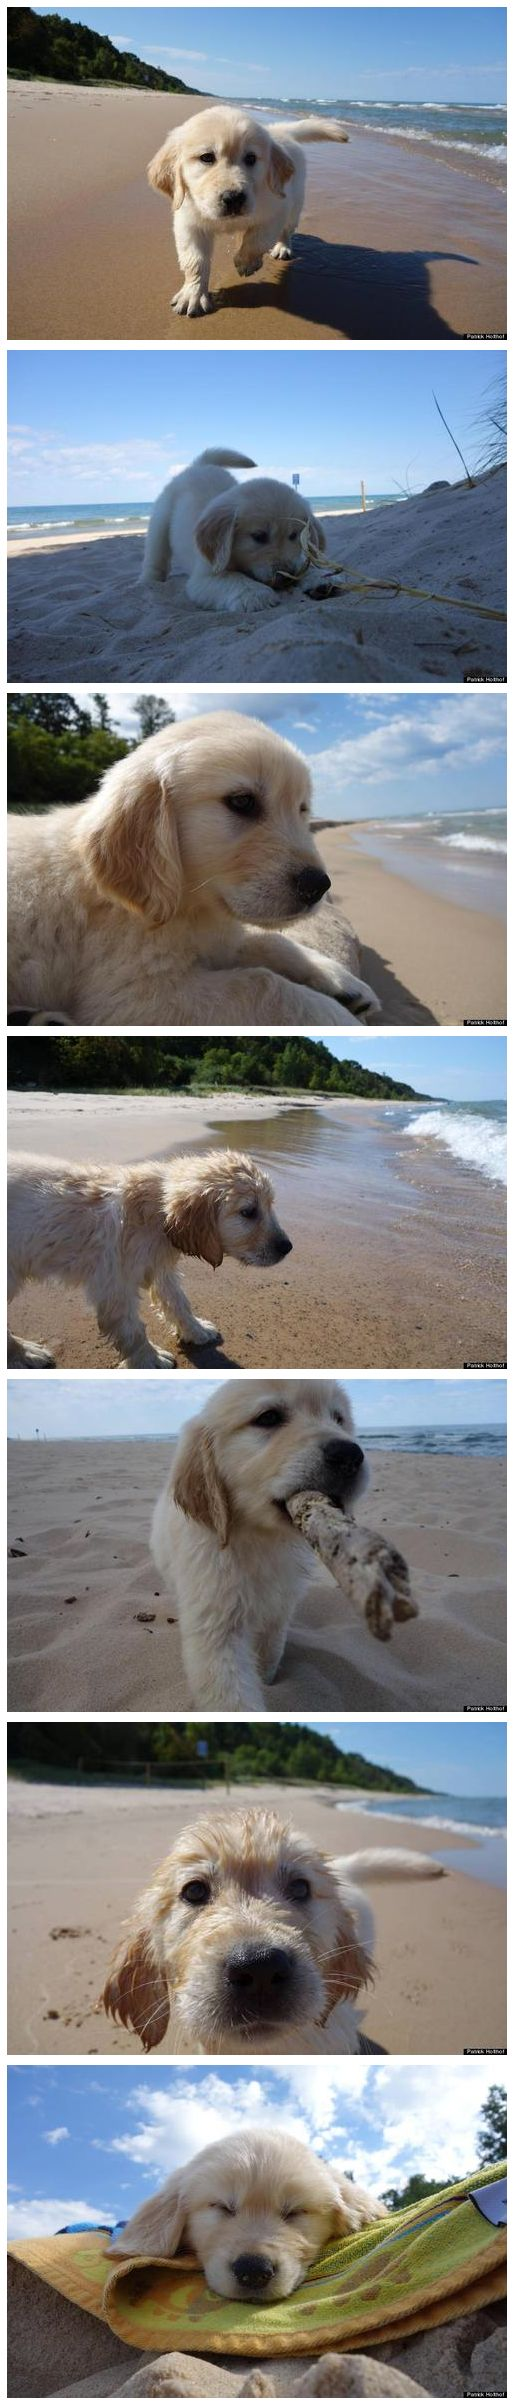 ❦  phototoartguy:  Puppy's First Visit To The Beach Will Make All Other Dog Photos Out There Irrelevant This little fella's name is Champ. He's 9-week-old golden retriever that went to the beach for the first time in Hagar Township on Lake Michigan.   Photograher Patrick Holthof